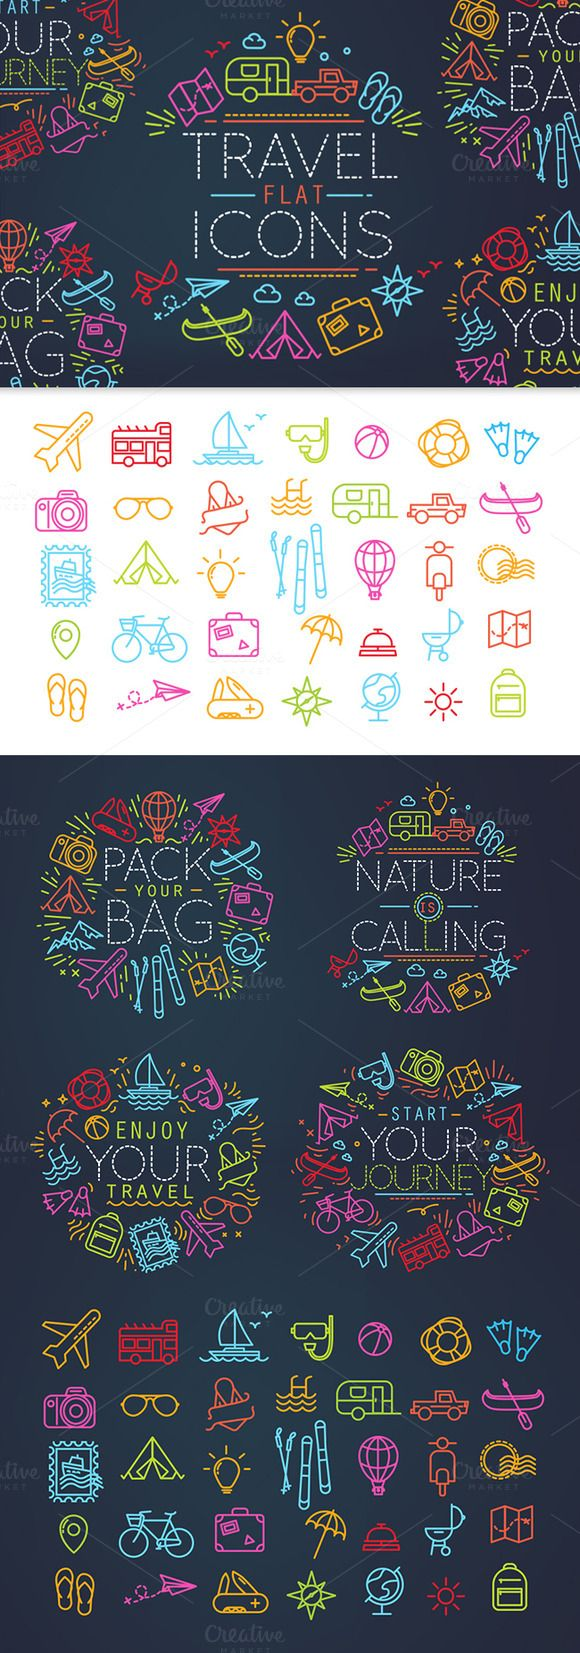 Travel flat icons by Anna on Creative Market